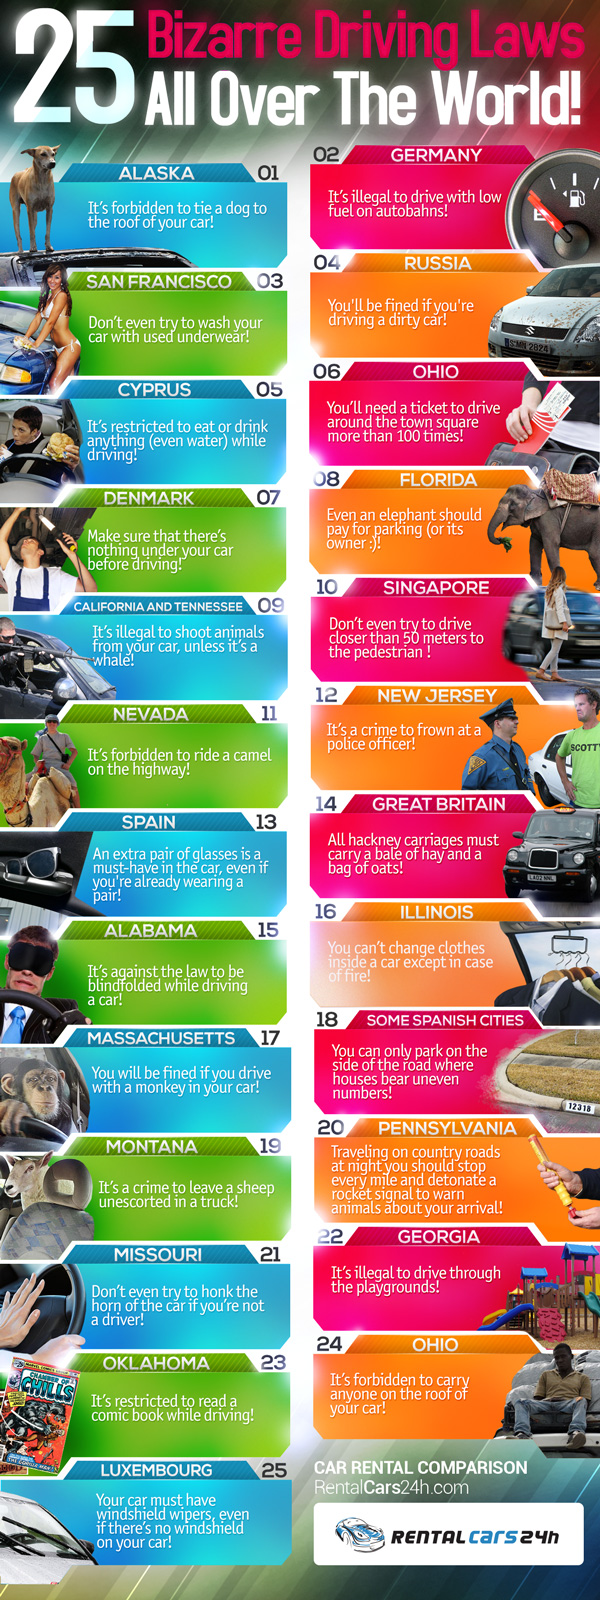 25 Driving Laws 25 Bizarre Driving Laws All Over The World